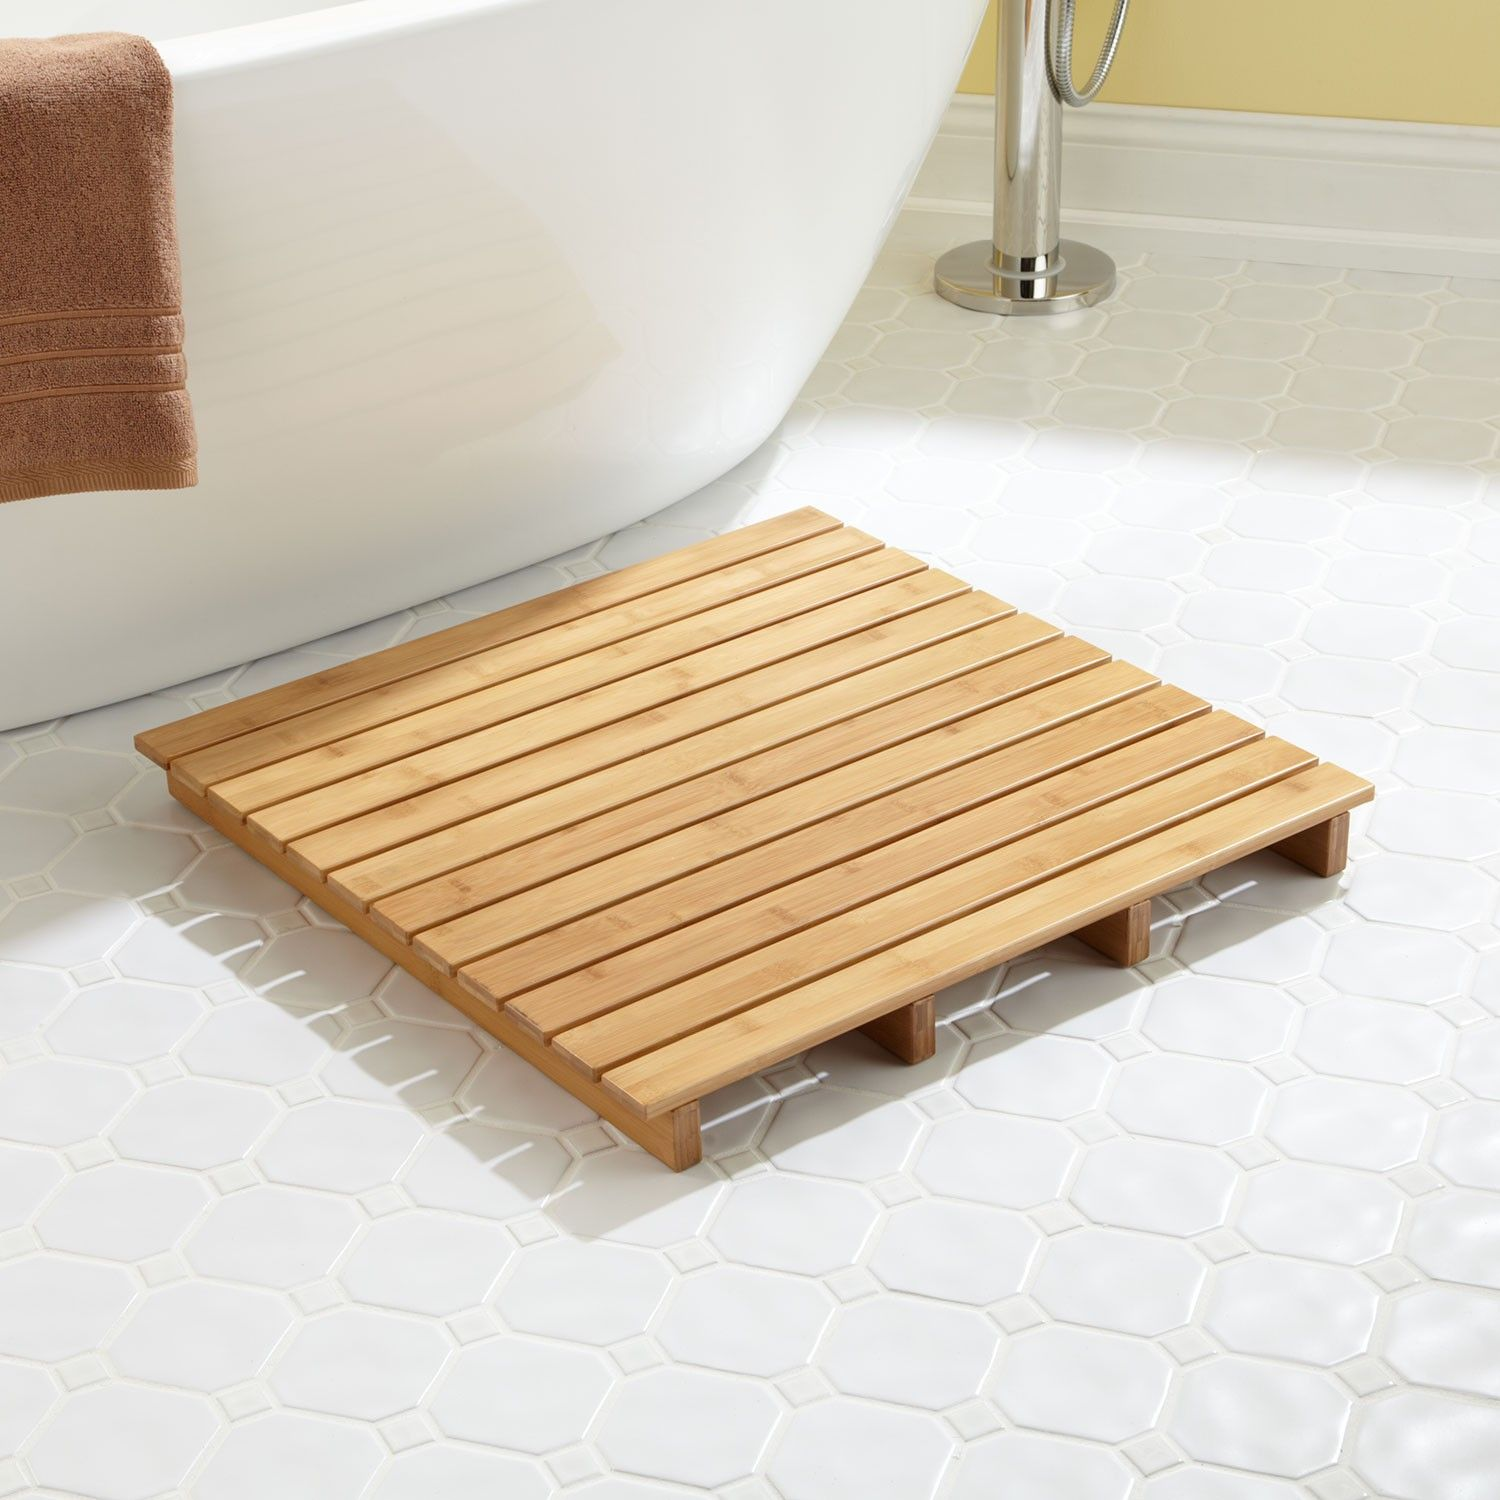 Statuette of Wood Shower Mat: Give A Little Natural Accent to Your ...